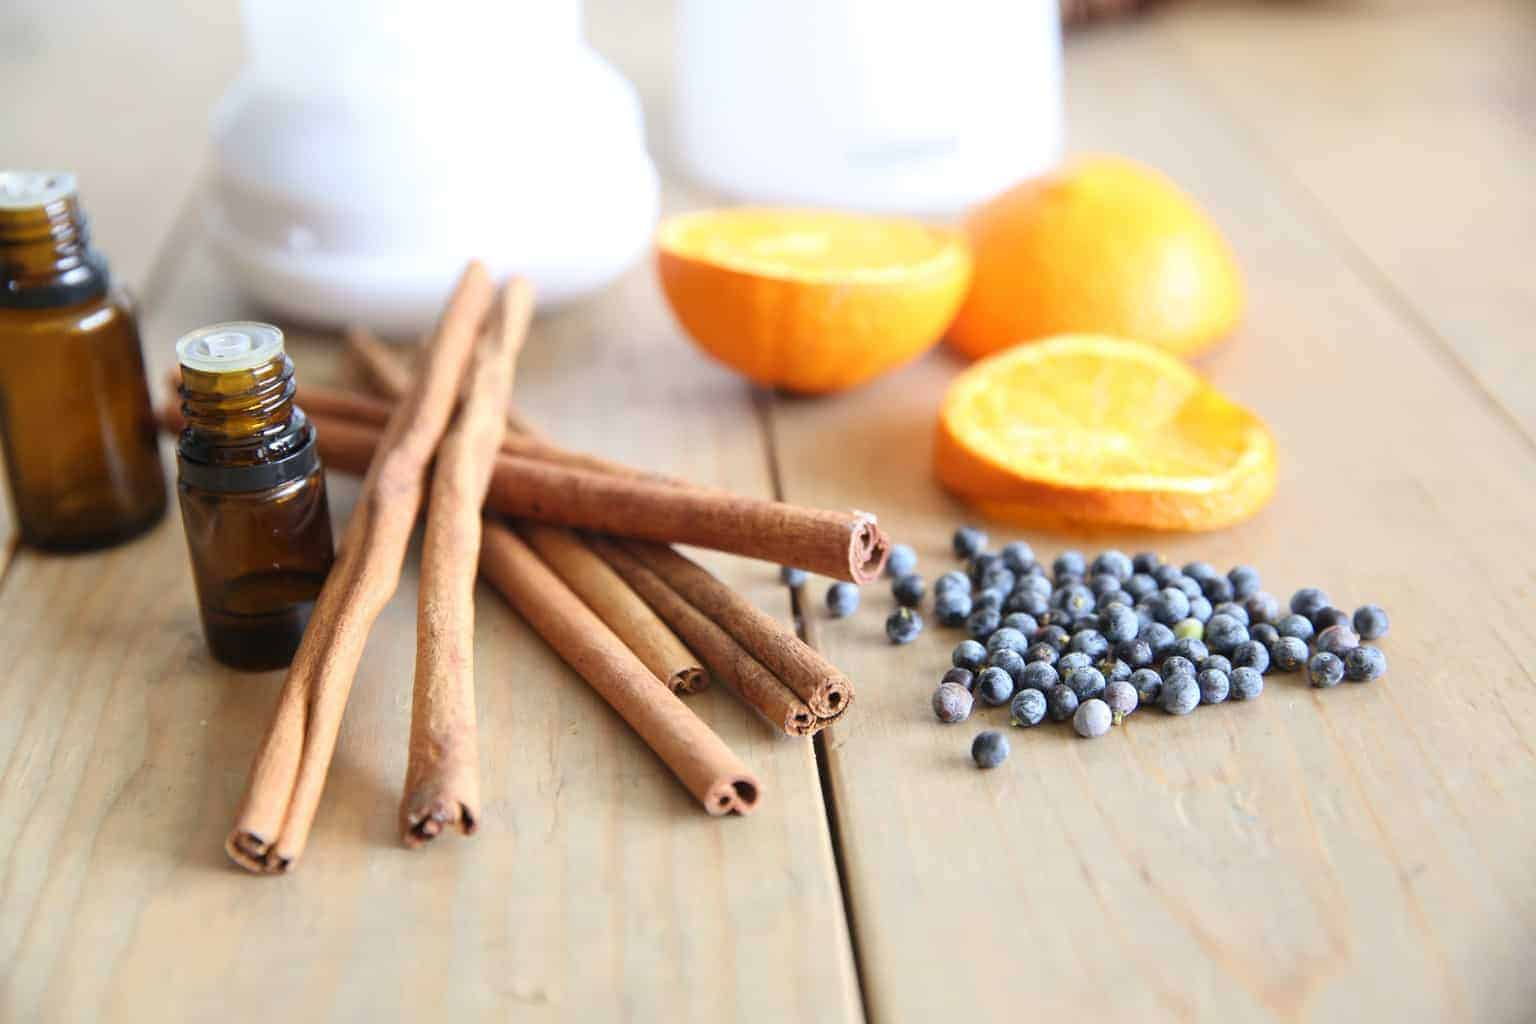 Essential oil diffusers release small molecules of essential oils into the air that can be inhaled to promote overall wellness and boost the immune system naturally.